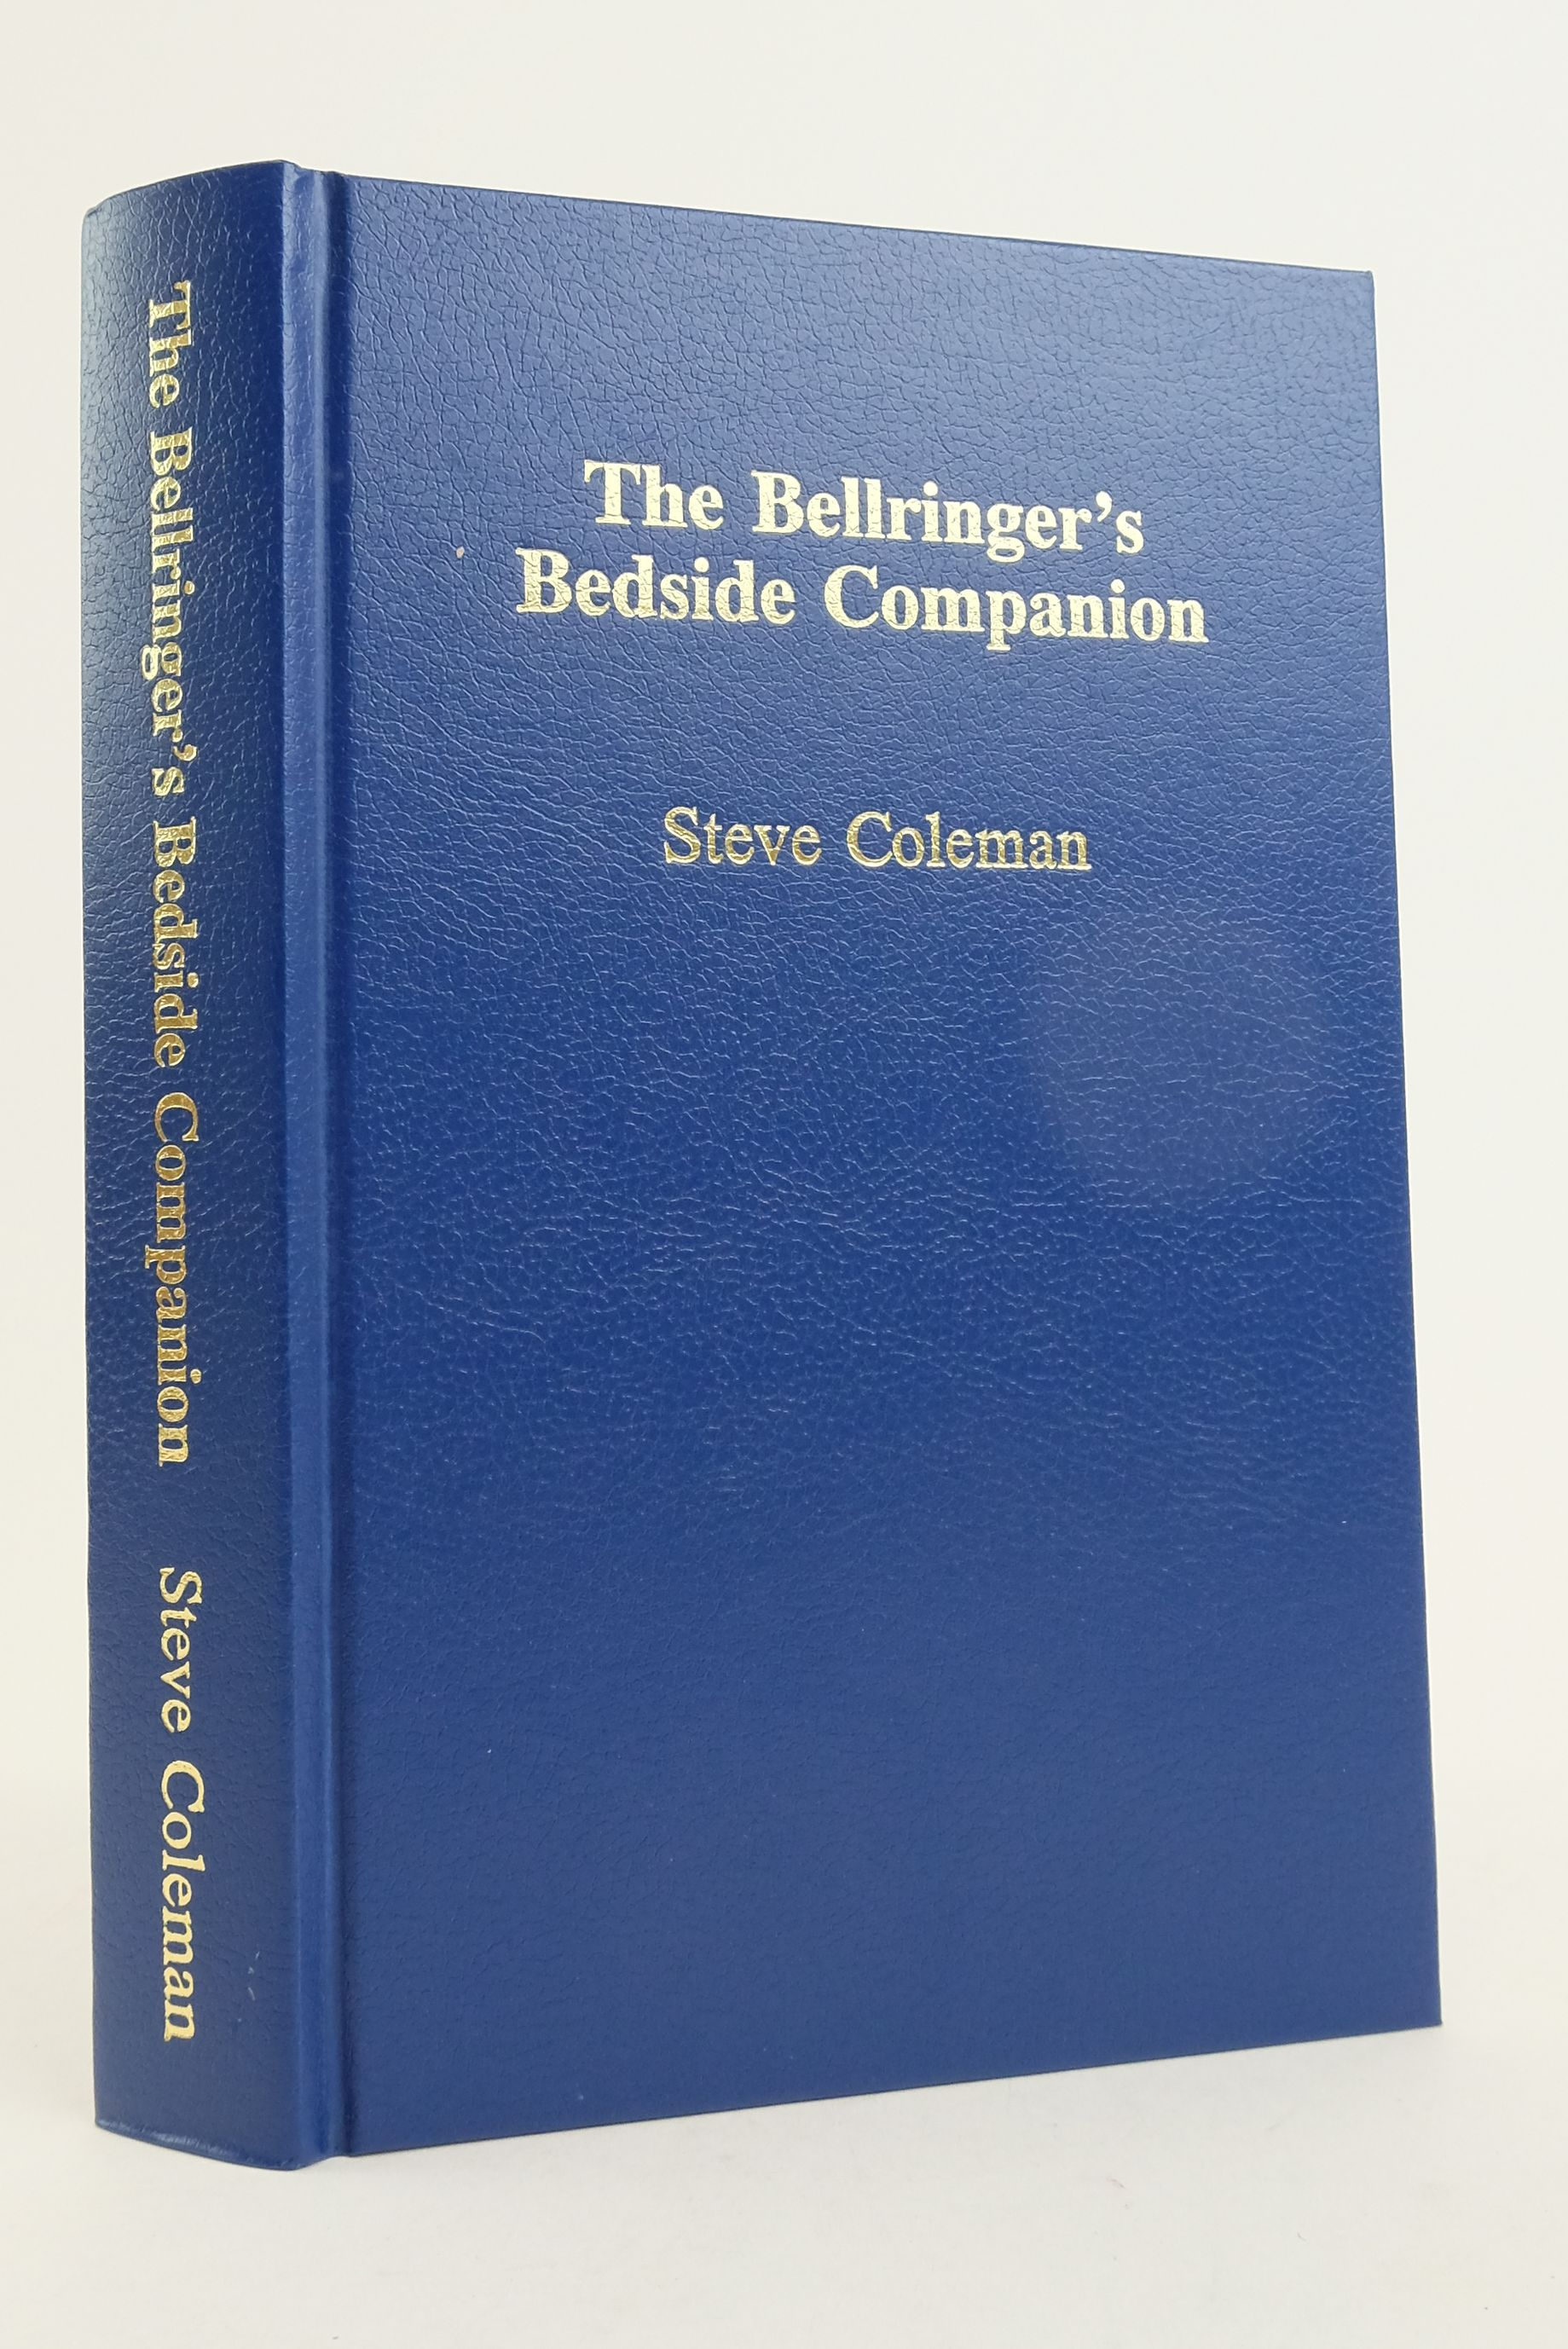 Photo of THE BELLRINGER'S BEDSIDE COMPANION- Stock Number: 1822379